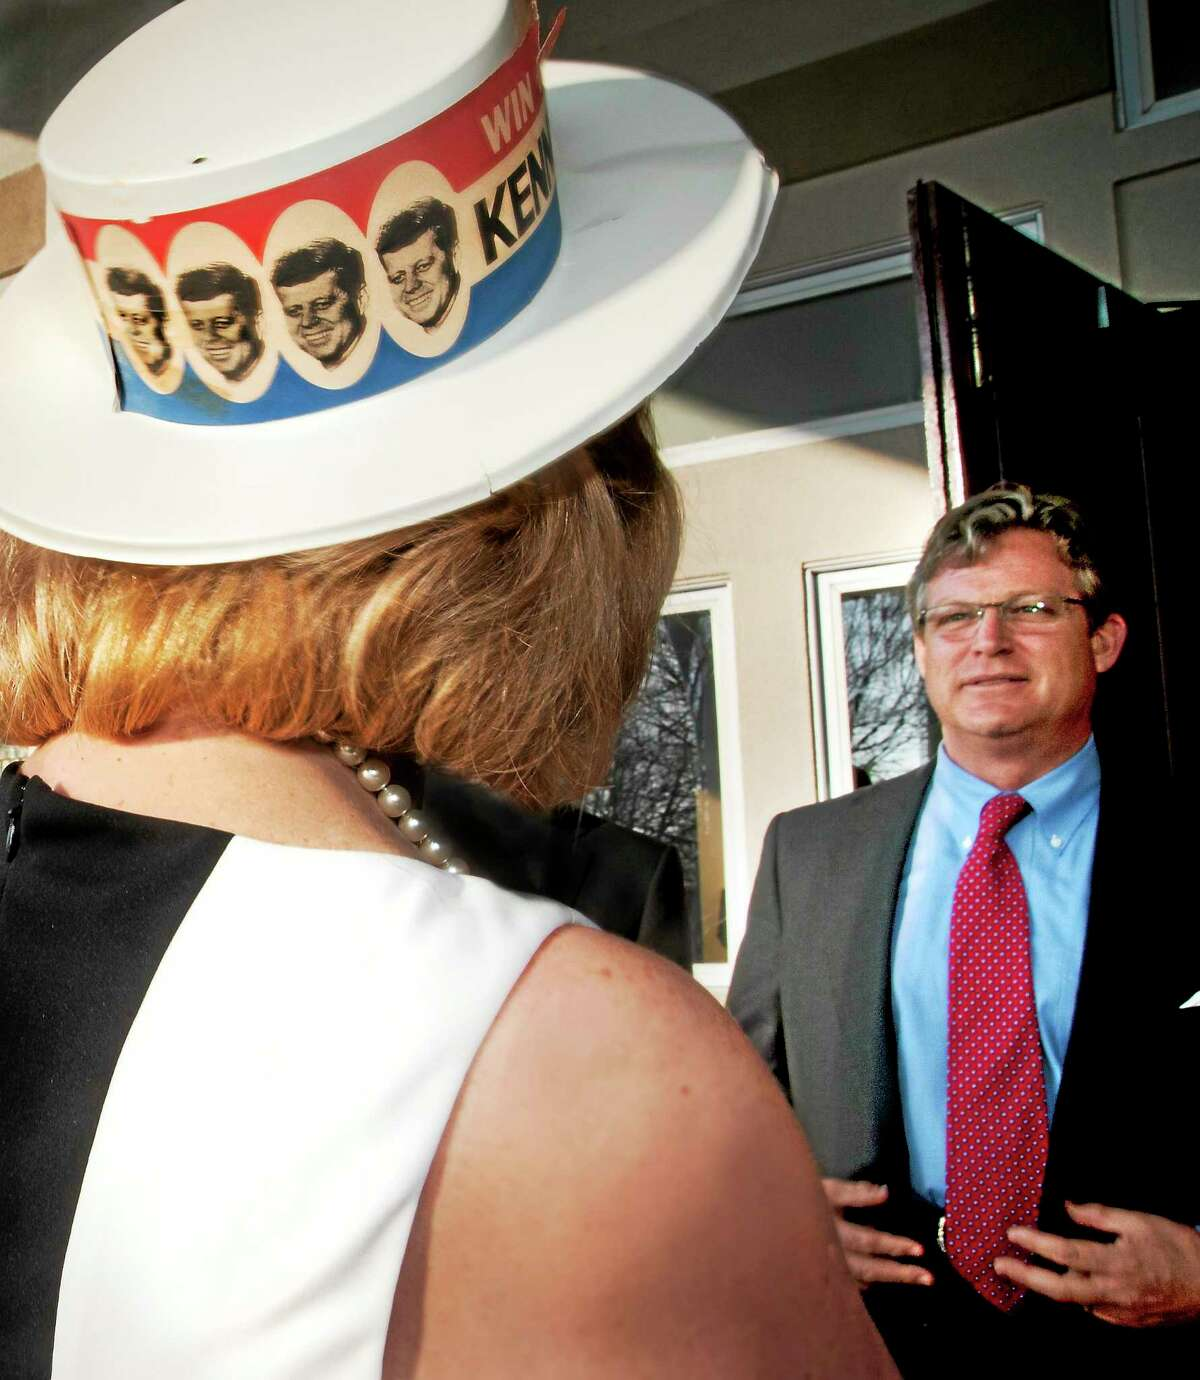 (Melanie Stengel - Register) ¬ Bonnie Fitch, of Nortford wears a vintage Kennedy campaign hat as she is greeted by Ted Kennedy Jr. at the annual SARAH gala at Woodwinds in Branford 5/1.